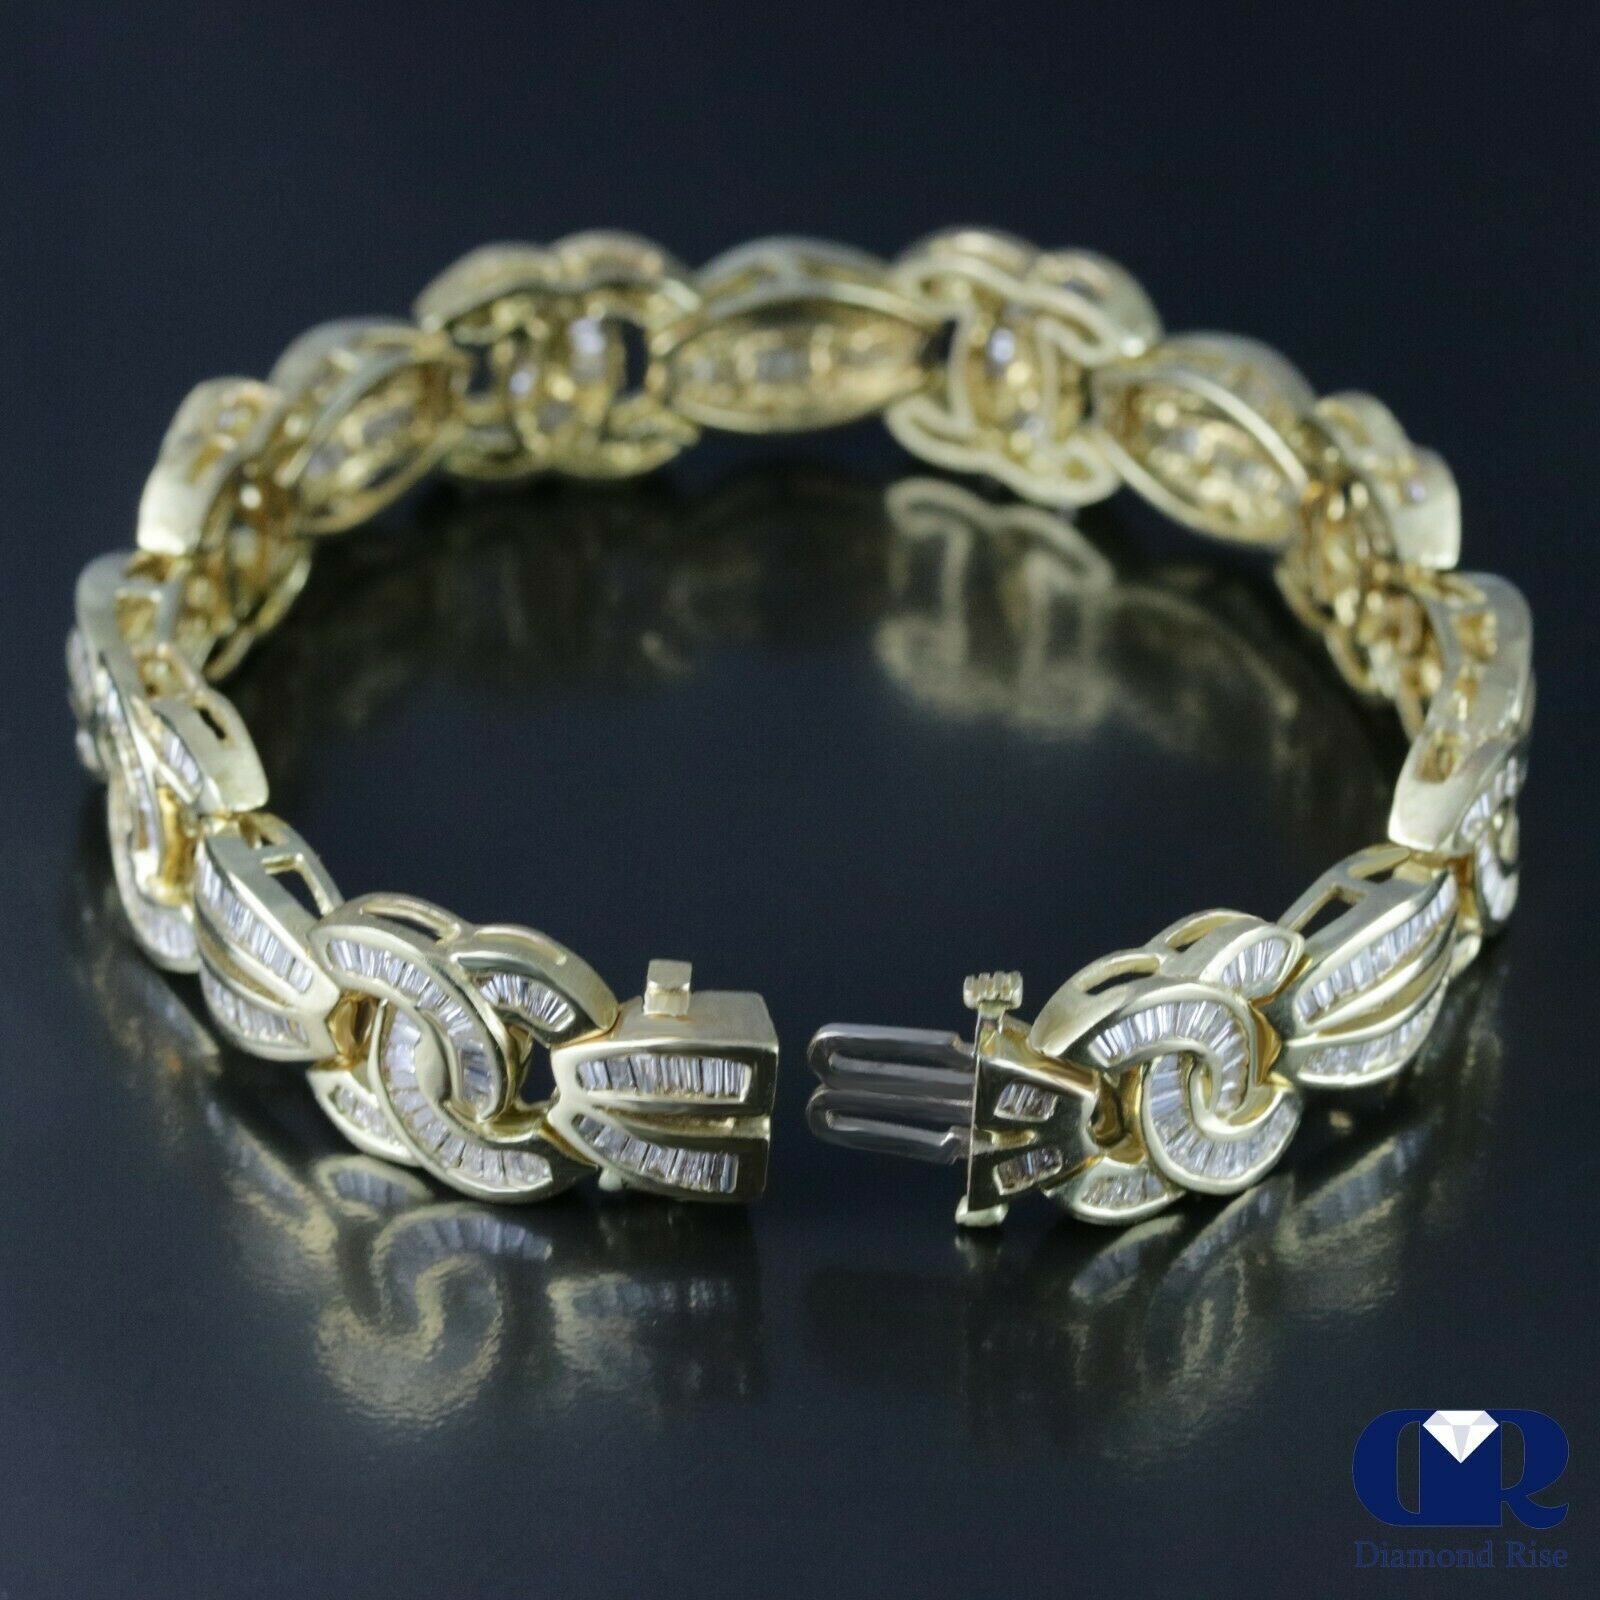 Details About 5 80 Carat Baguette Diamond Bracelet In 14k Yellow Gold